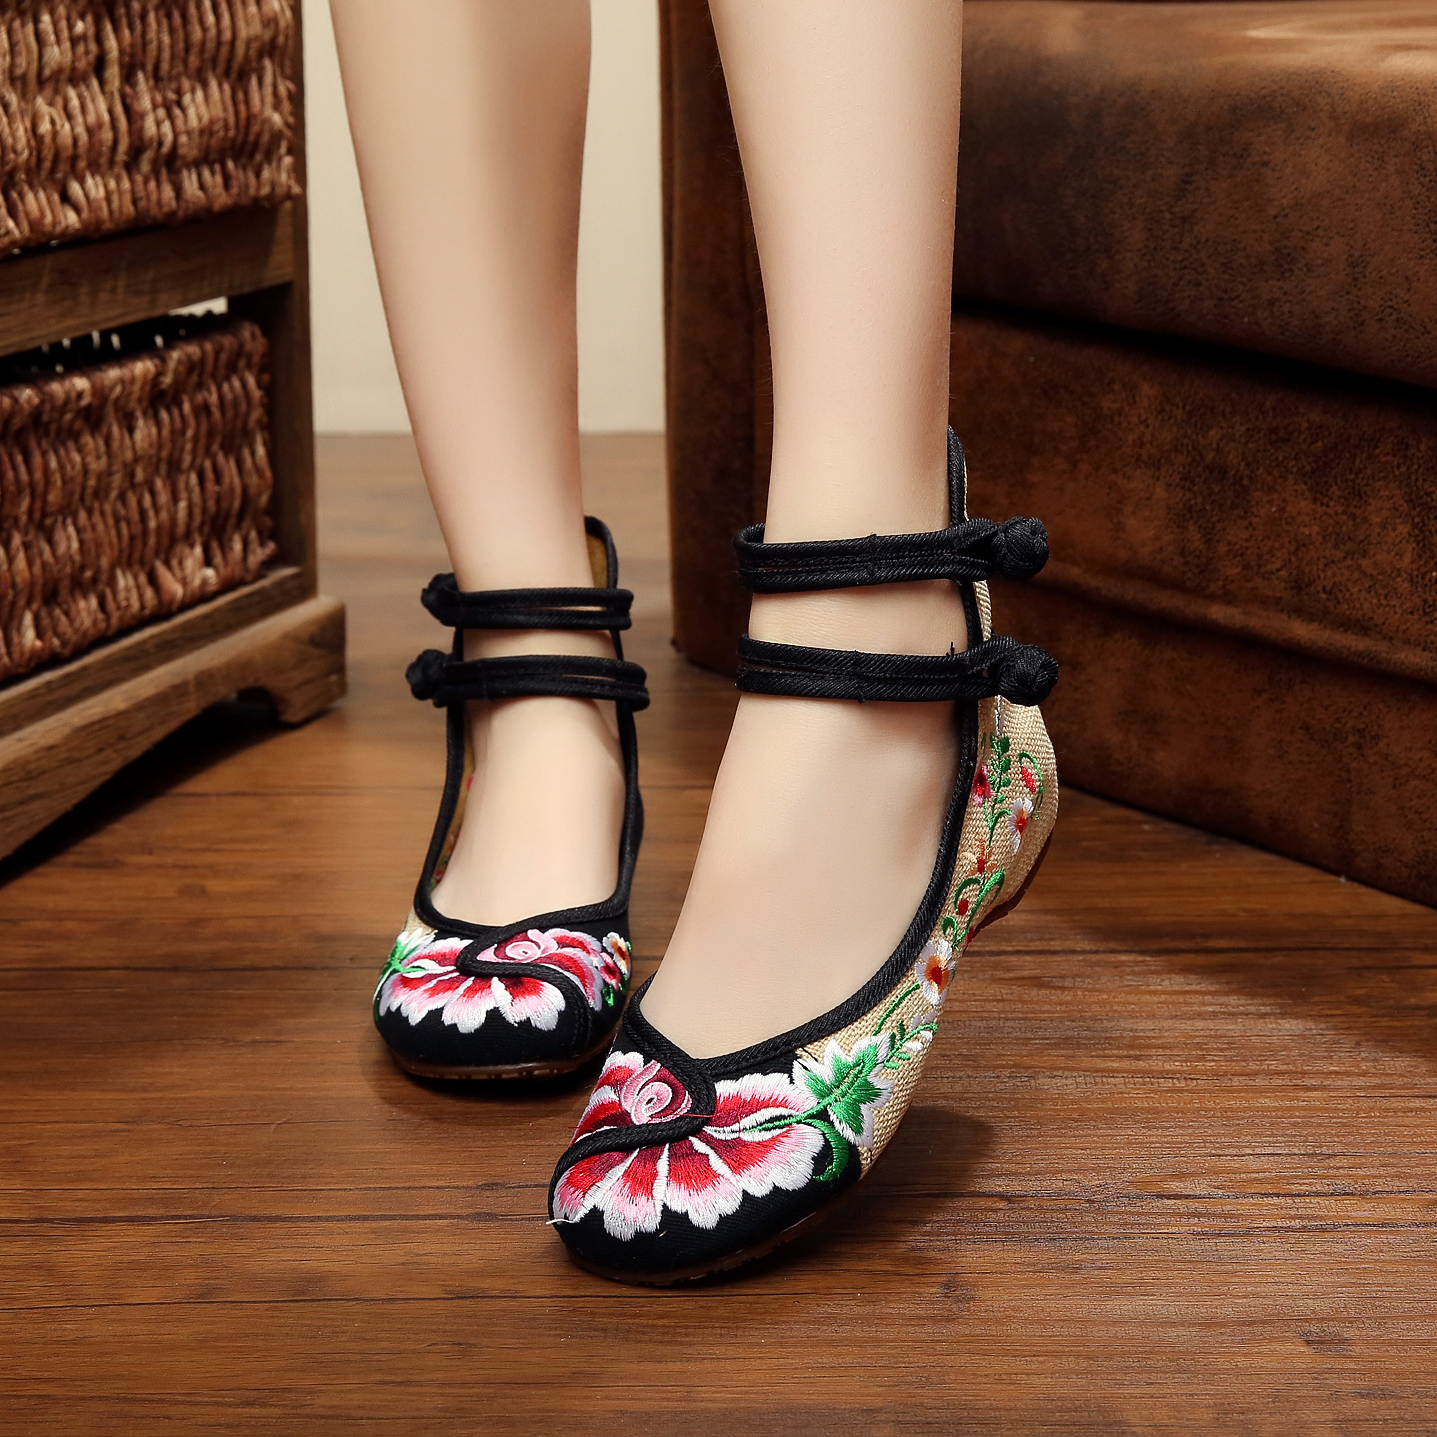 New Spring delicate retro flower embroidery linen shoes for women fashion ladies casual flats shose<br><br>Aliexpress